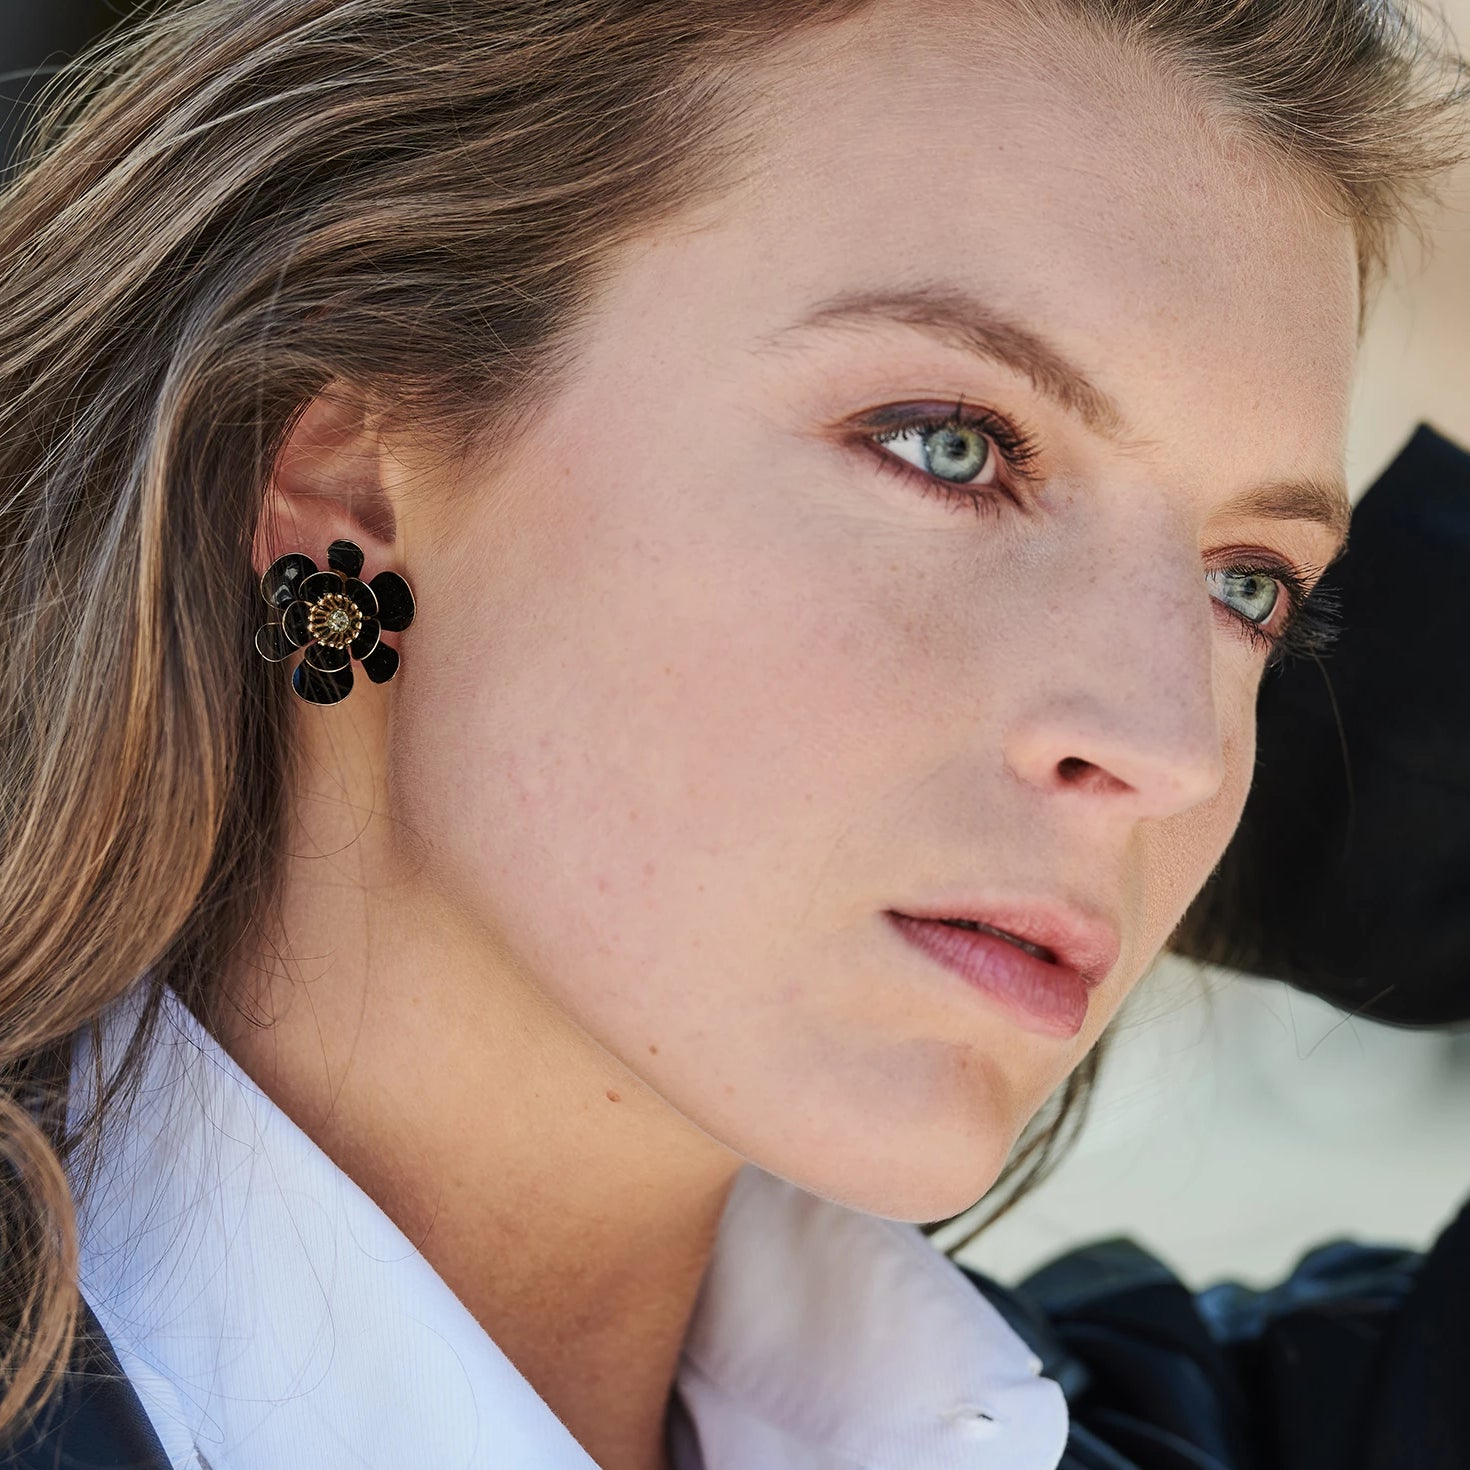 Gina shortie large black earrings - Souvenirs de Pomme